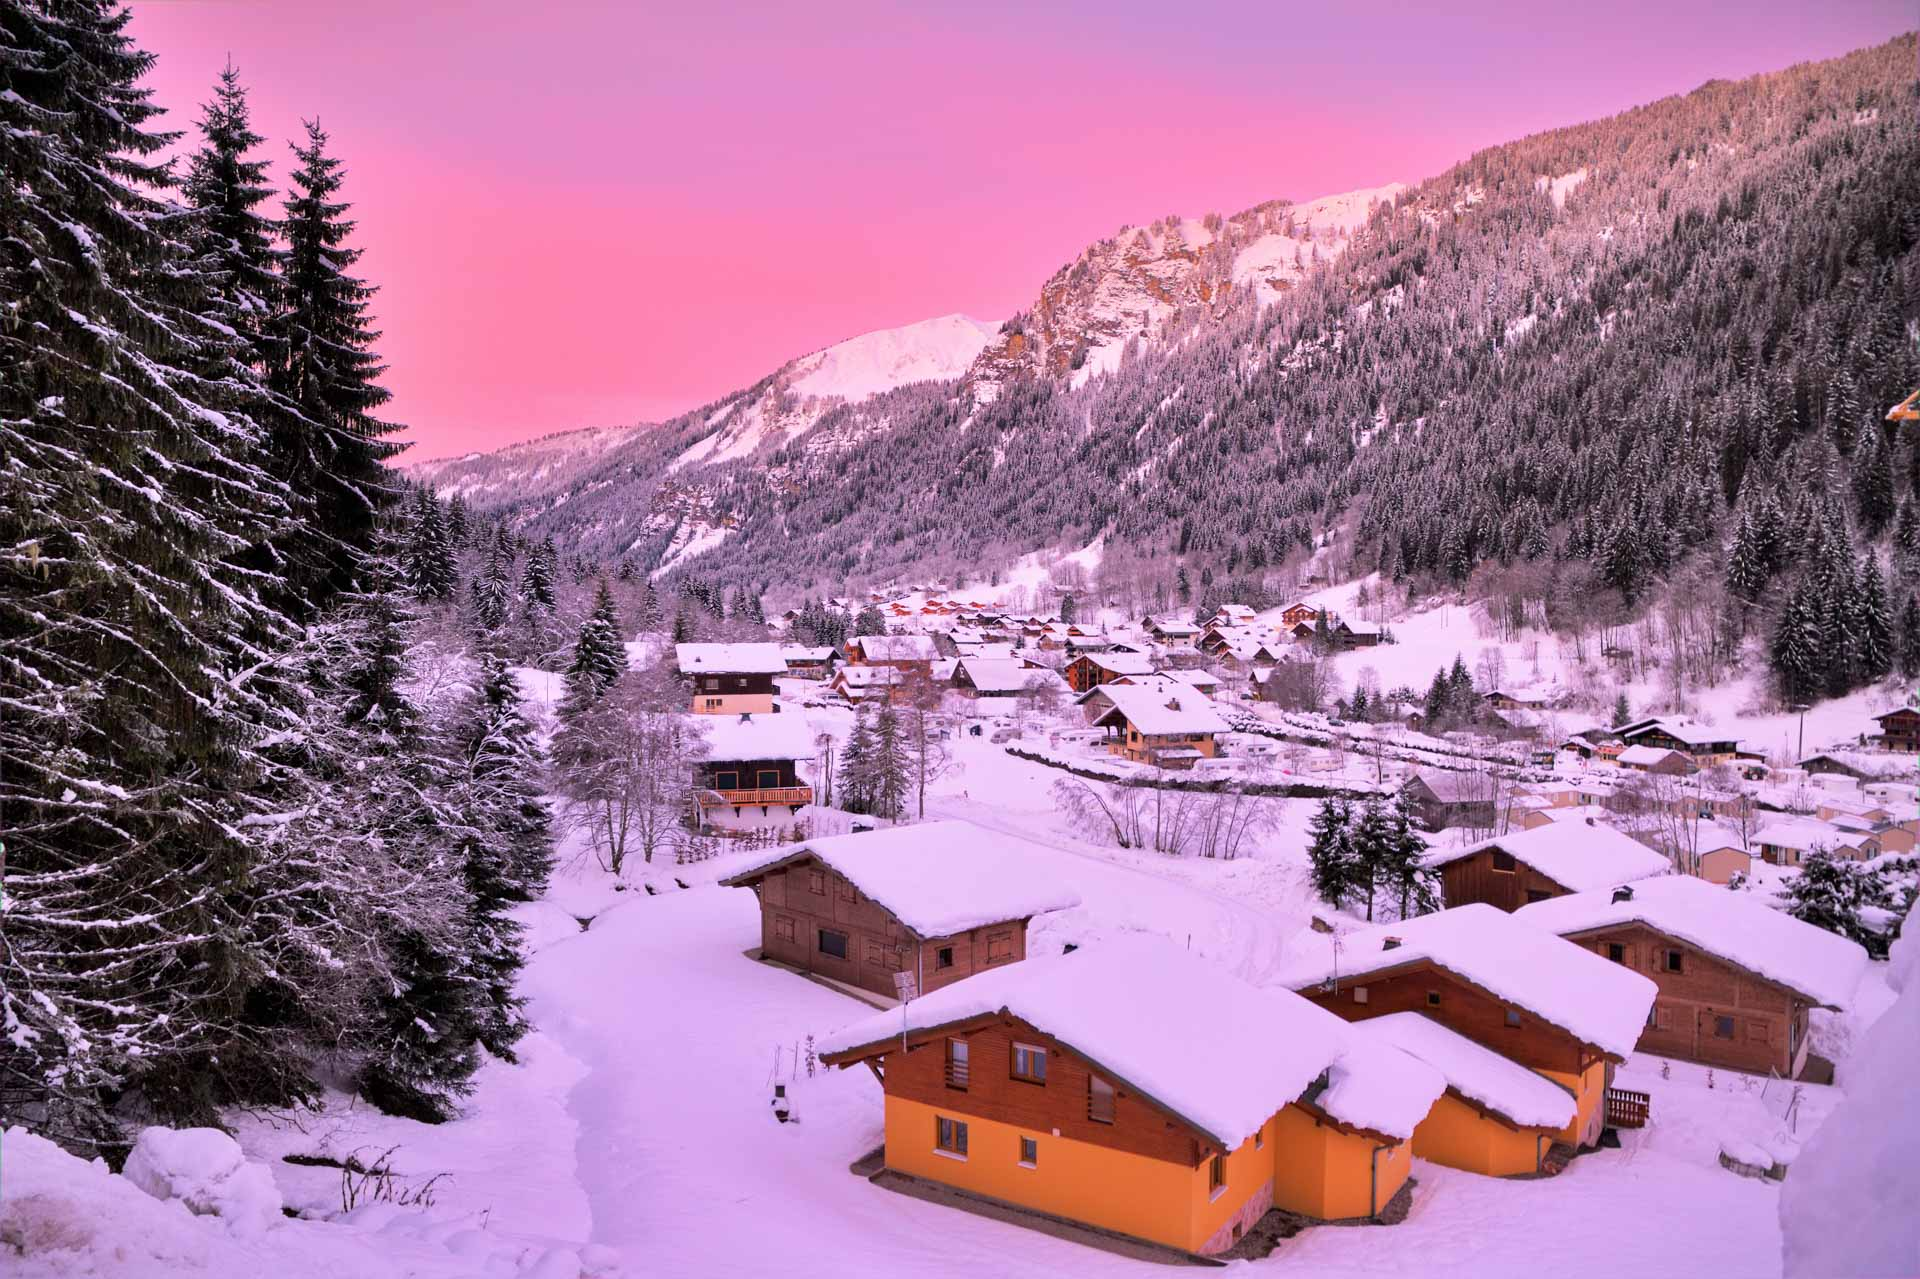 A beautiful pink and purple sunset washes over the mountains and chalets of the Chatel ski area